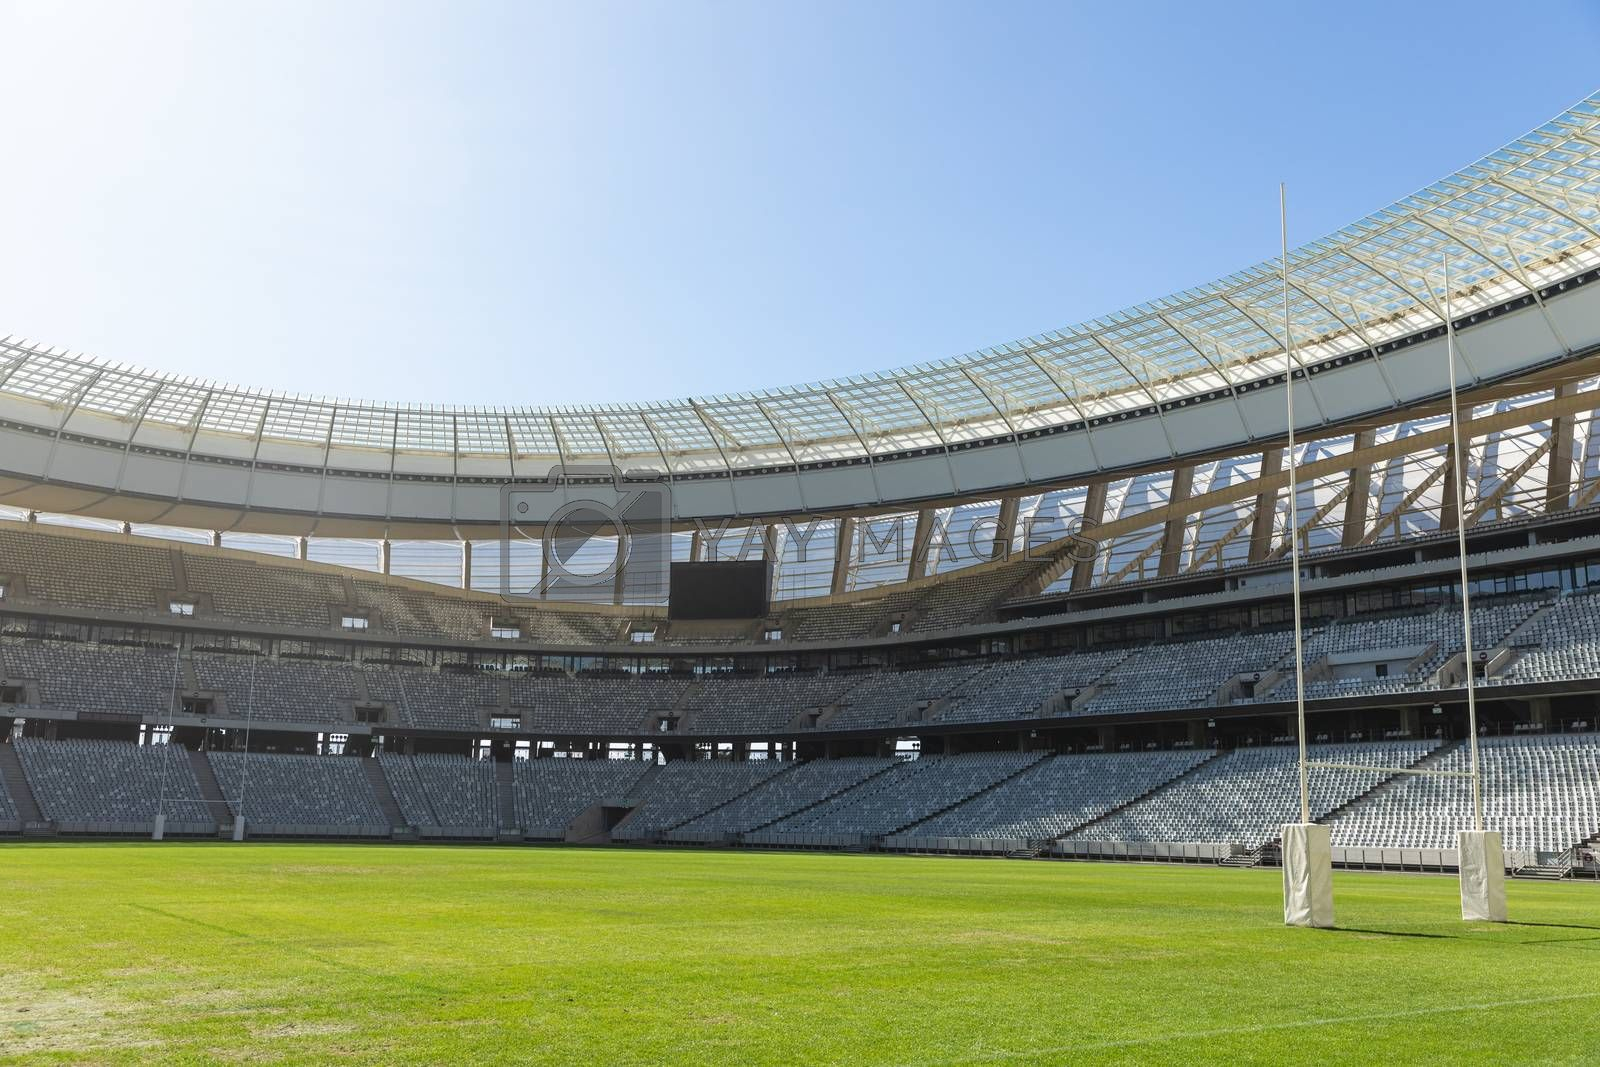 Empty Rugby goal post on a sunny day in the stadium